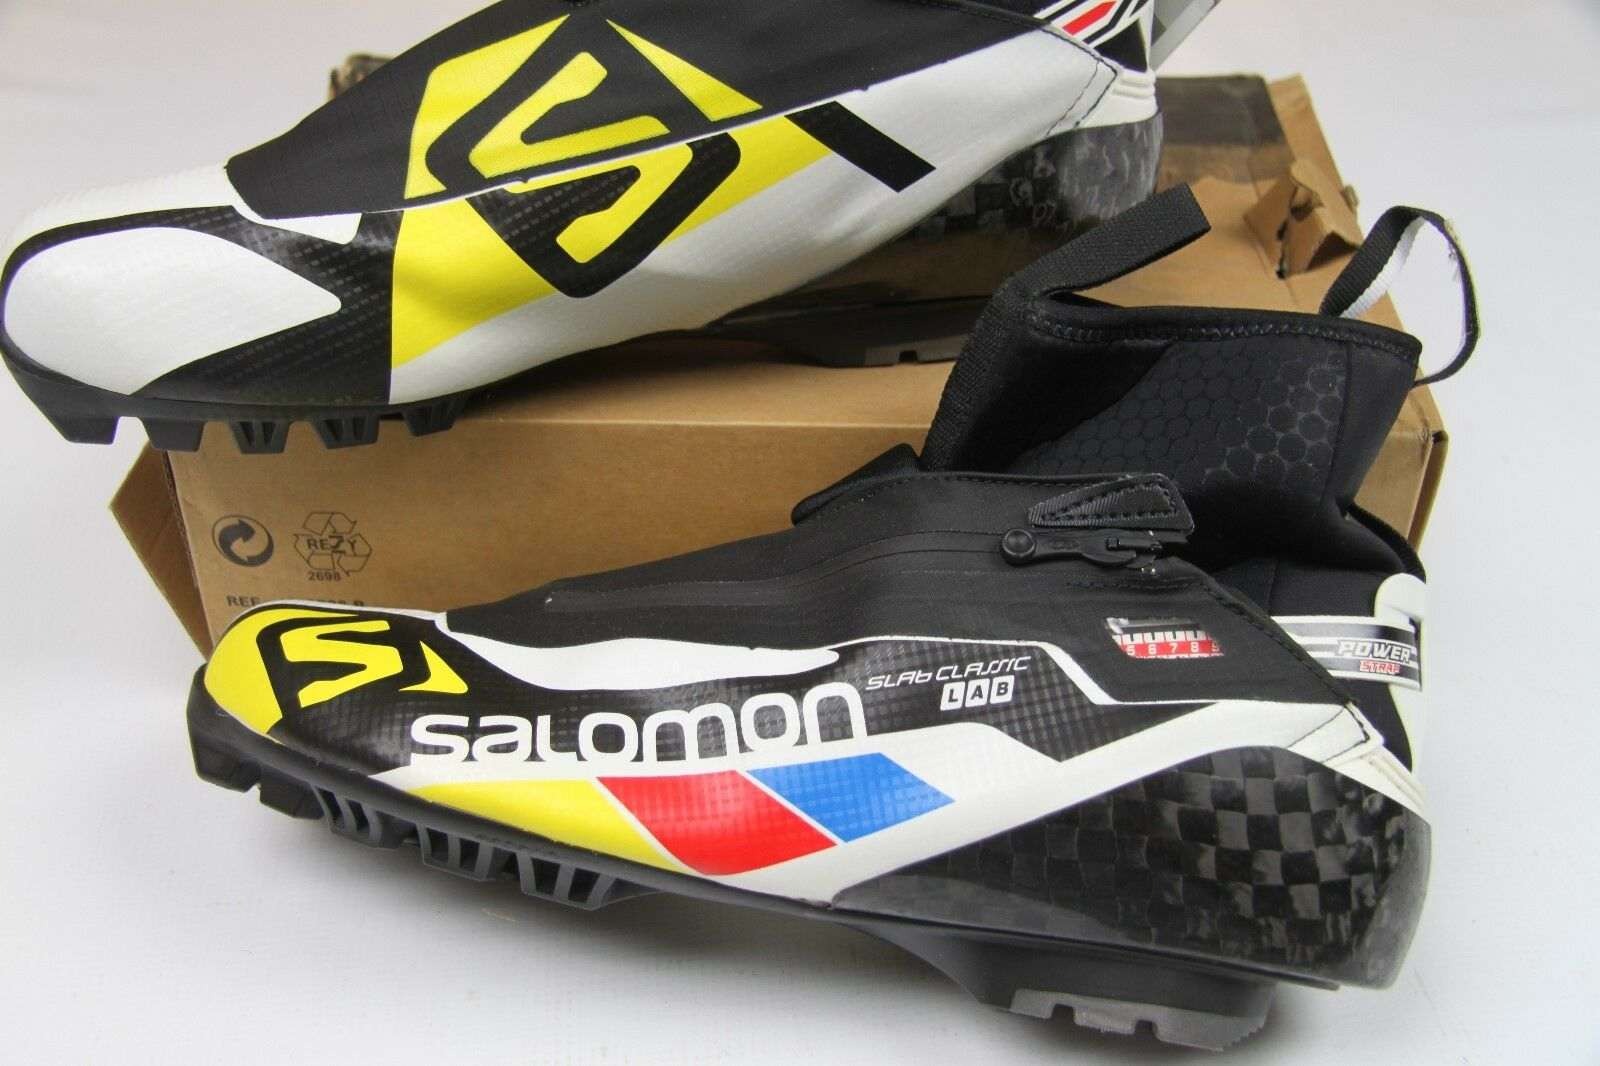 Salomon S-lab Classic  Nordic Ski Boots US 14.5 prt  lightning delivery